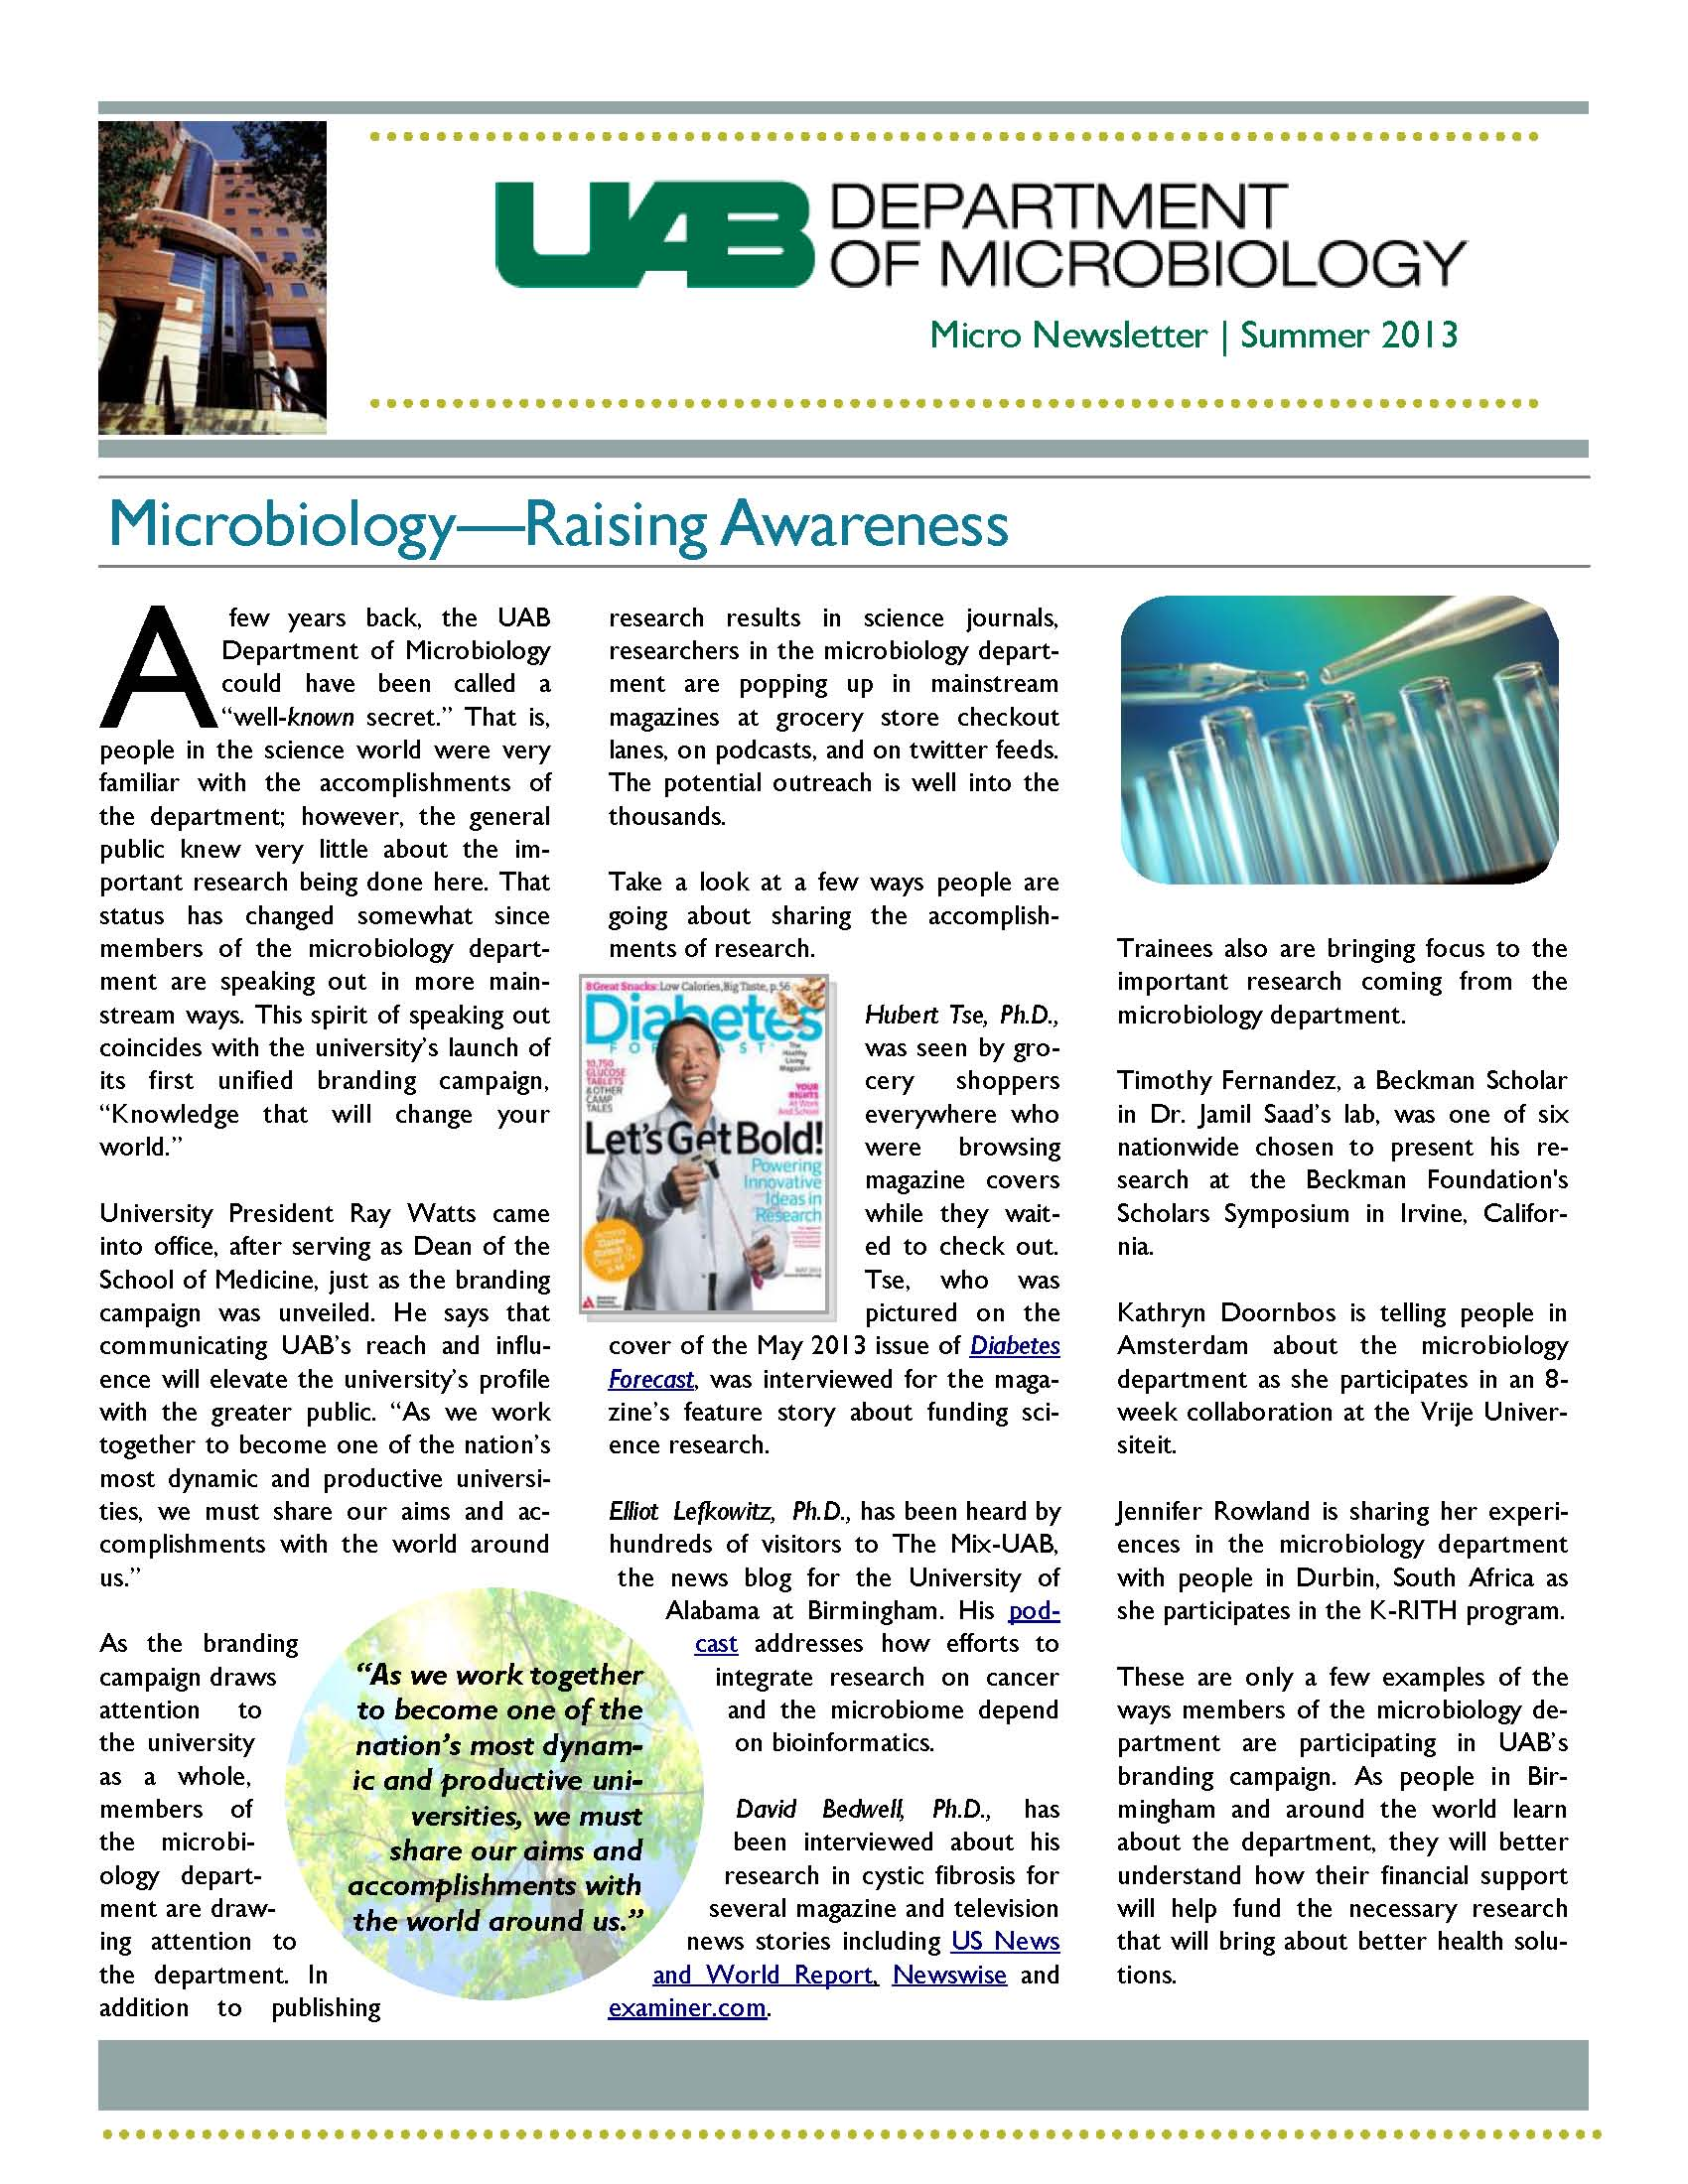 Microbiology Newsletter Summer 2013 Page 1